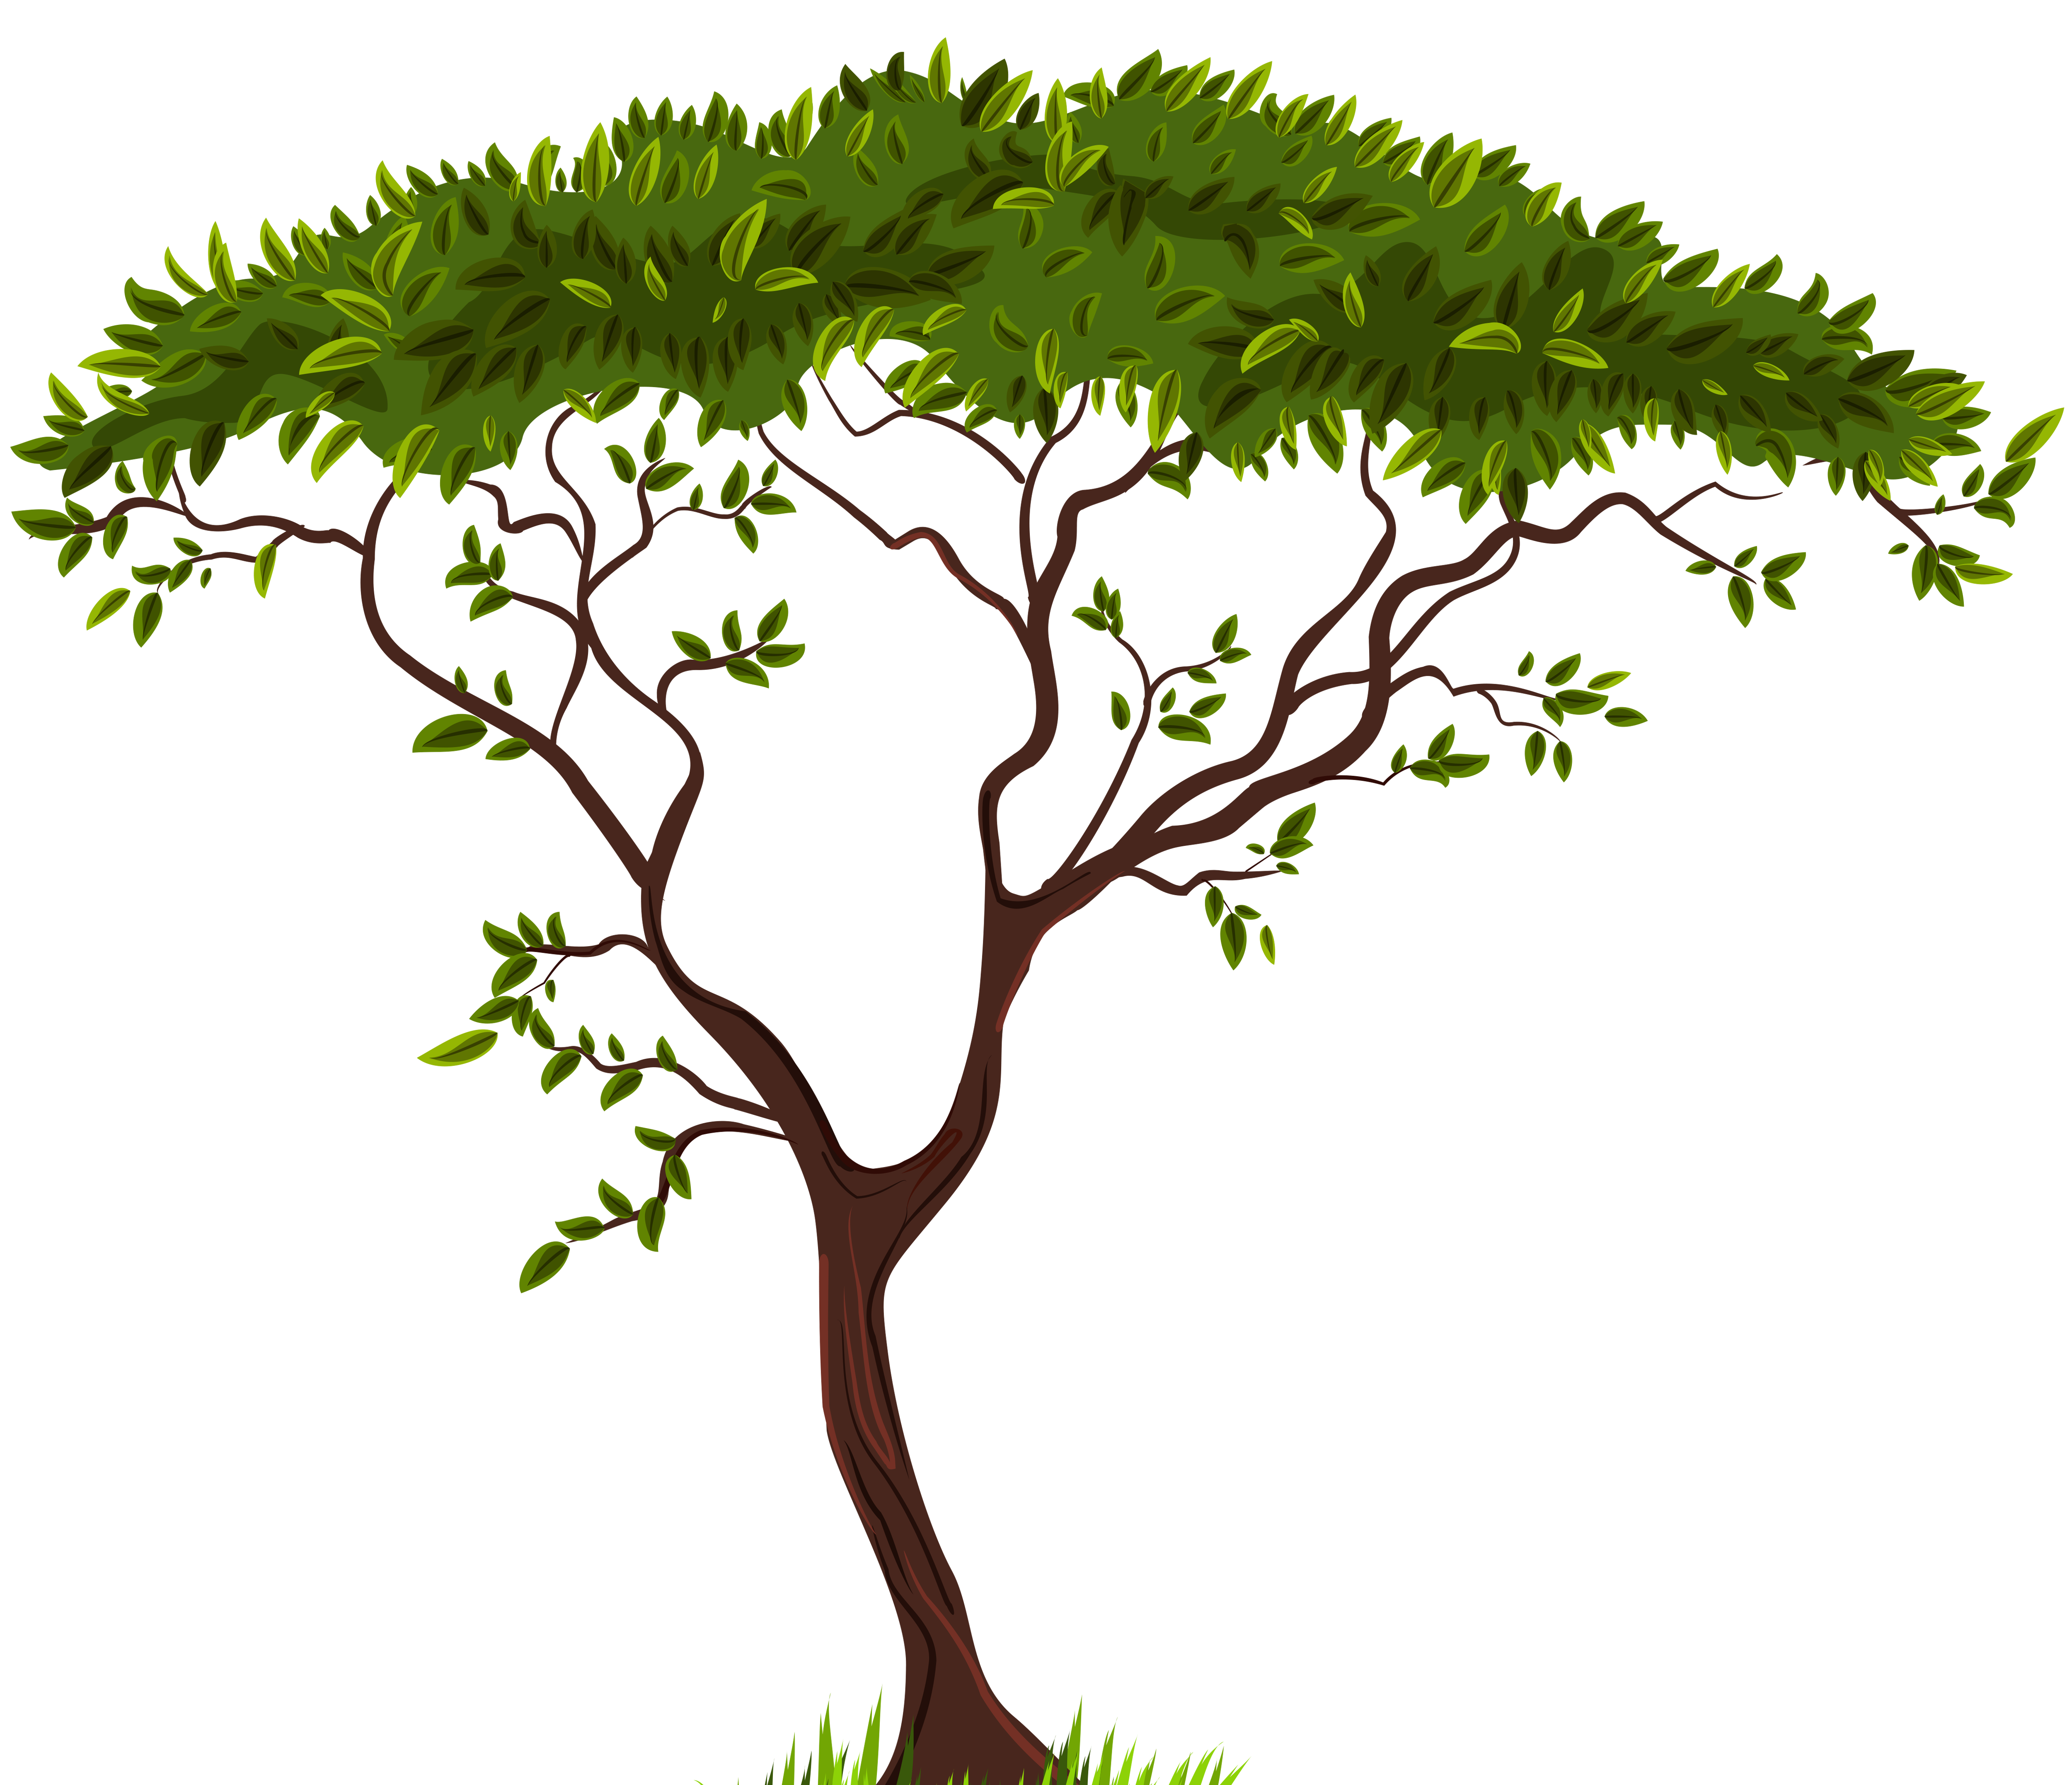 Hanging tree clipart image royalty free Png landscape clipart tree png - ClipartFest image royalty free